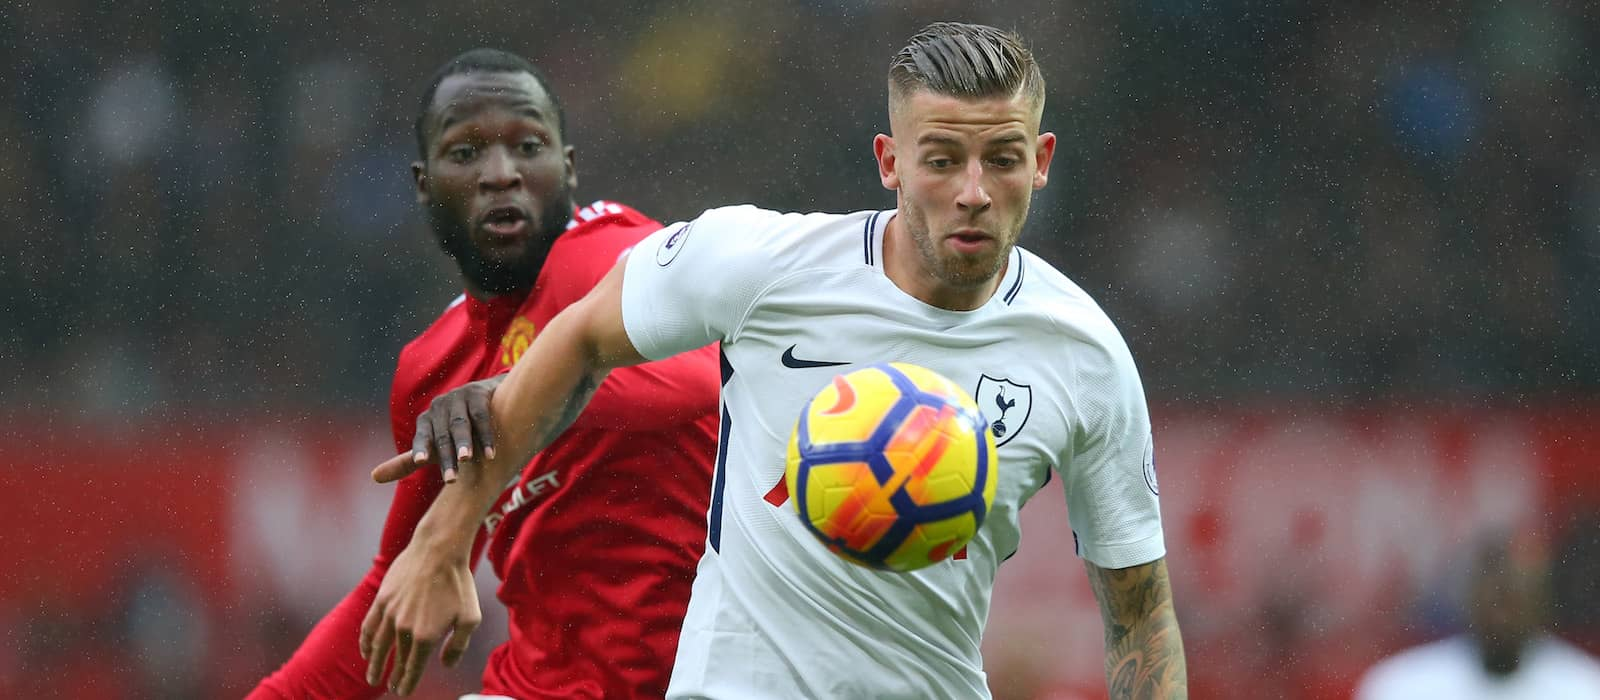 Manchester United unwilling to match Tottenham's asking price for Toby Alderweireld: report